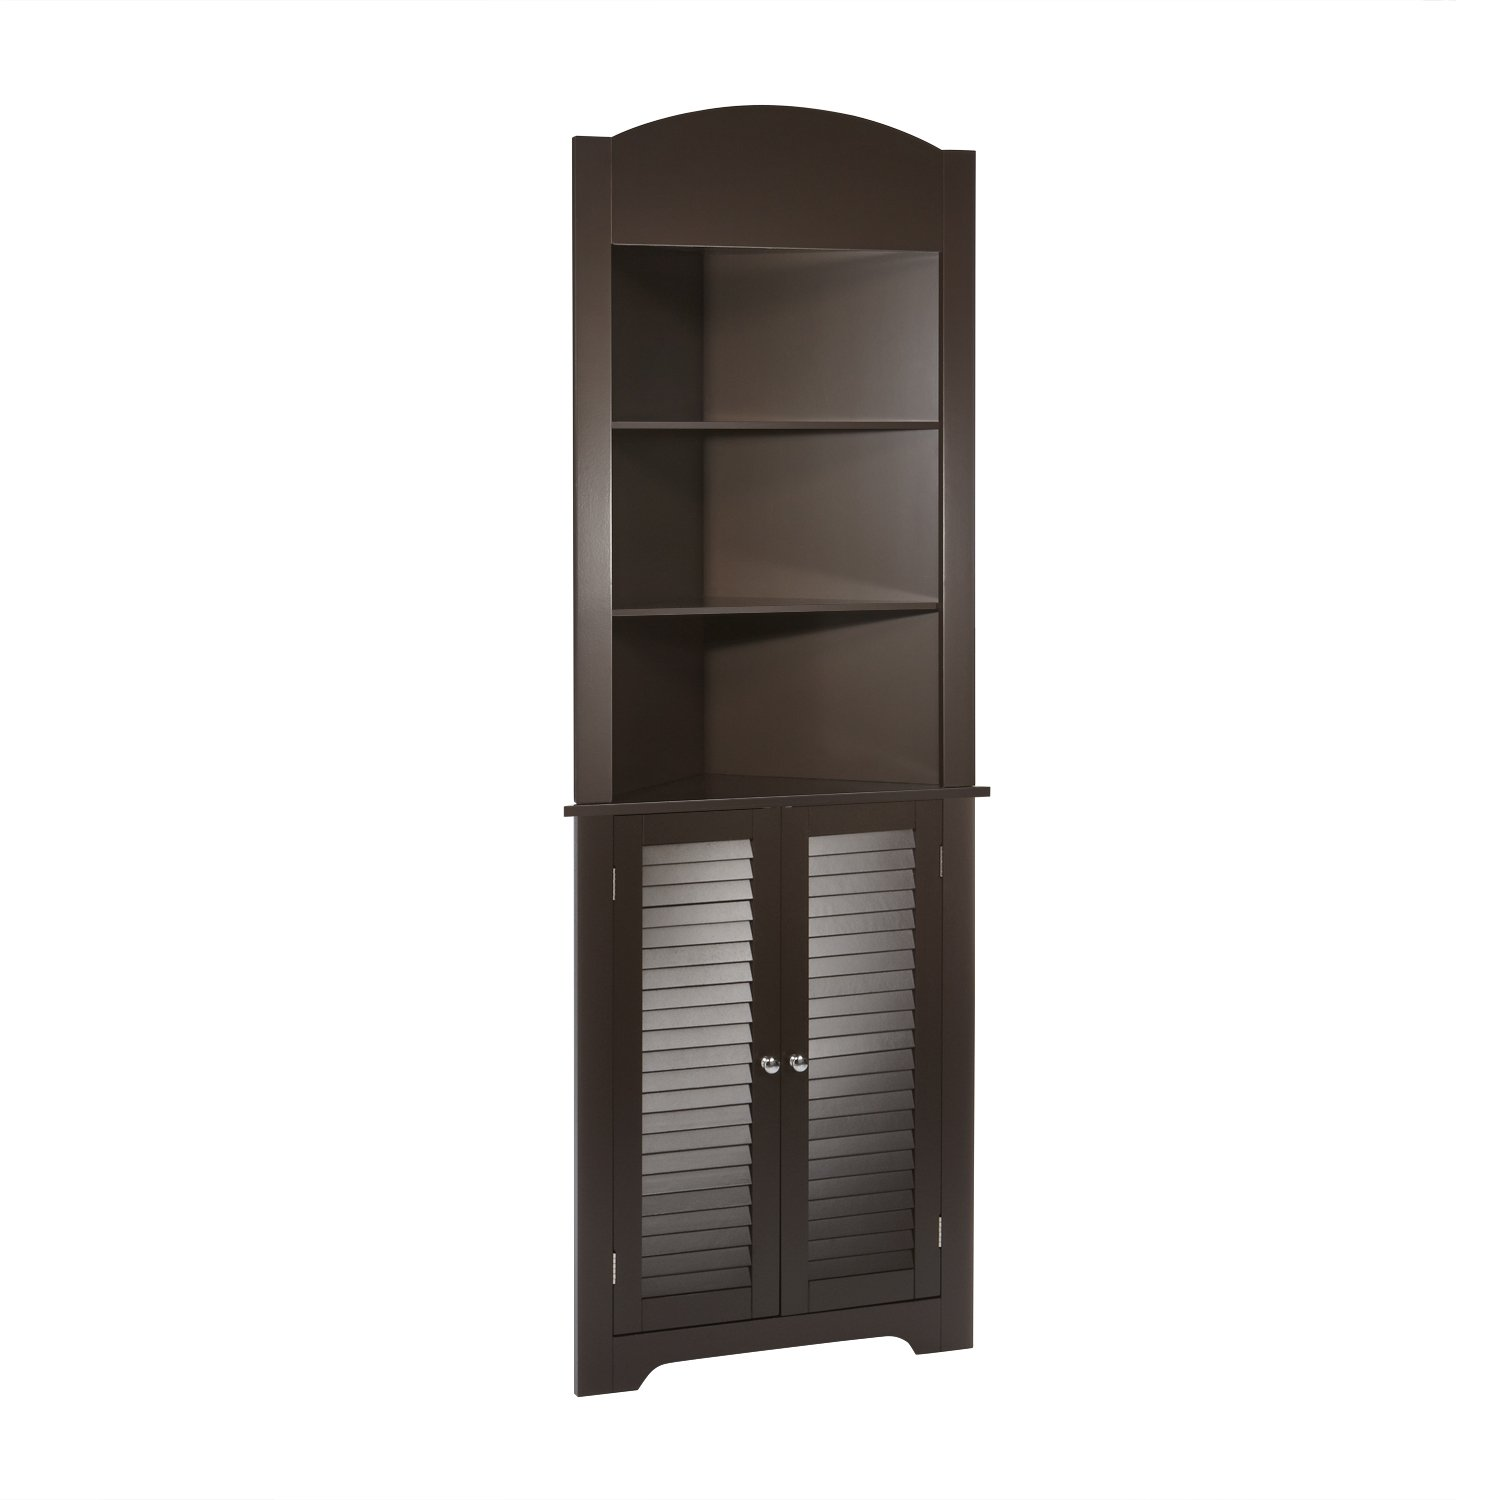 Amazon.com: Ellsworth Tall Corner Etagere - Espresso: Home & Kitchen